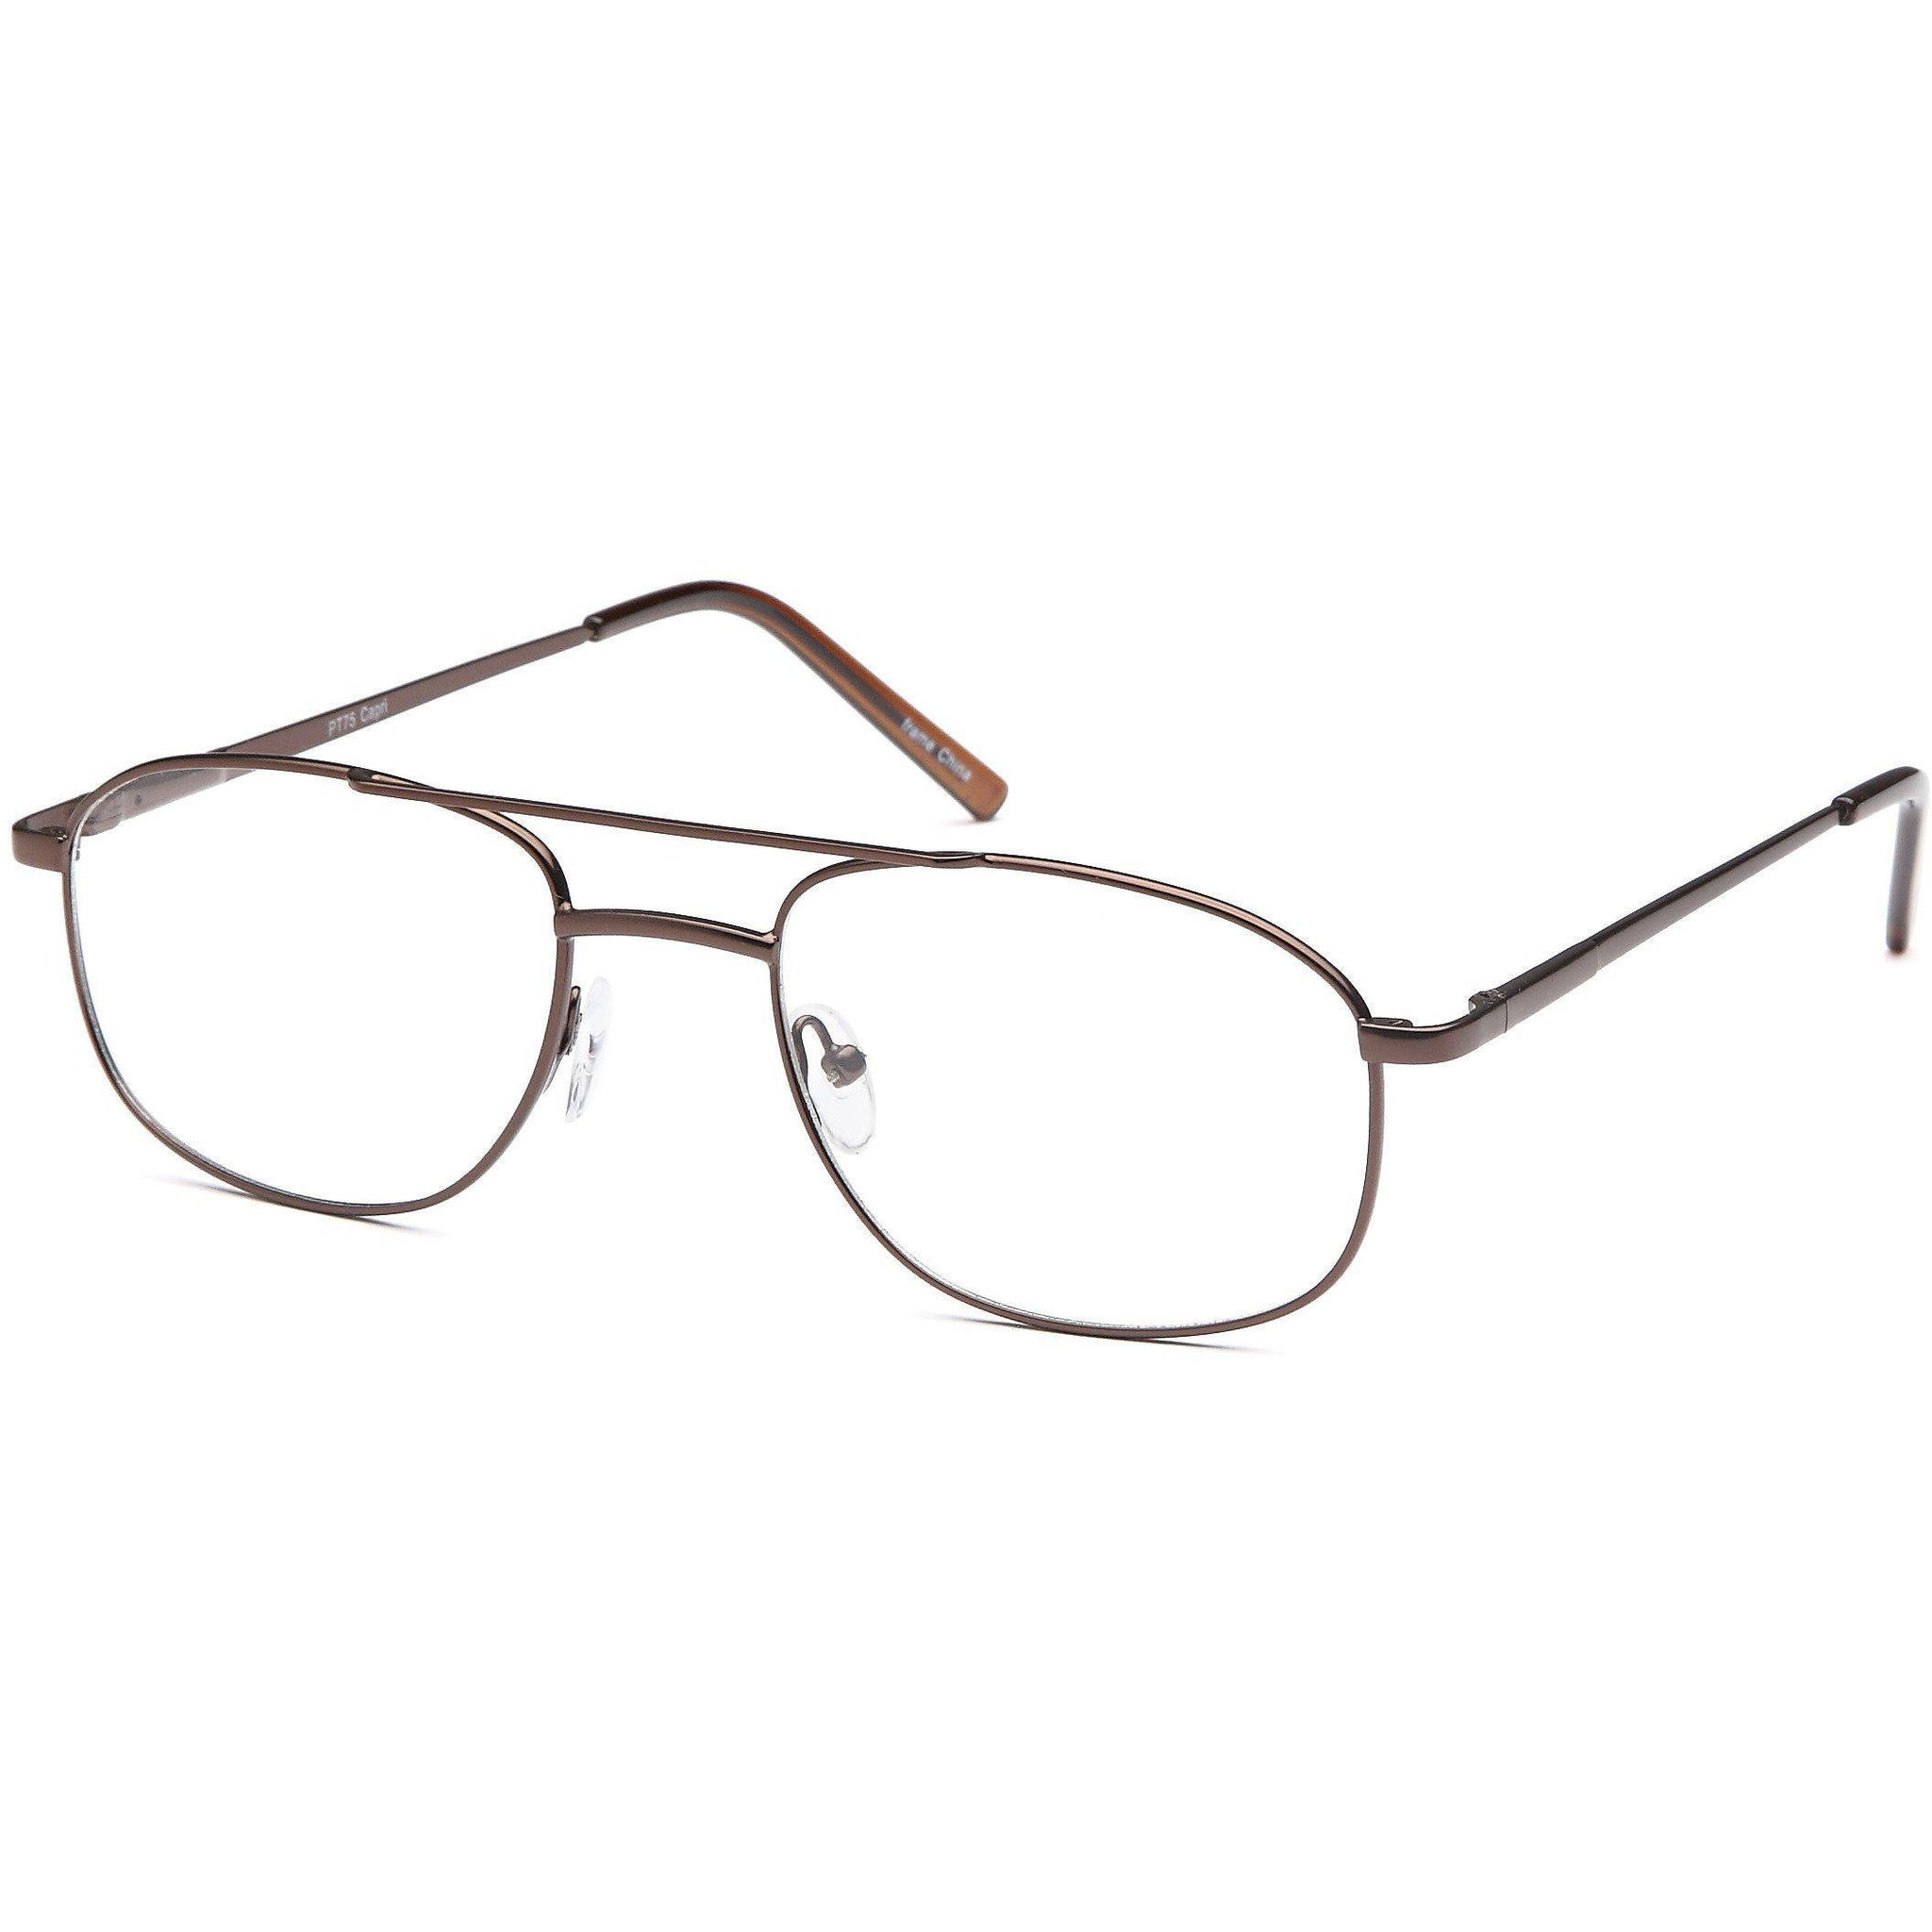 Appletree Prescription Glasses PT 75 Eyeglasses Frame